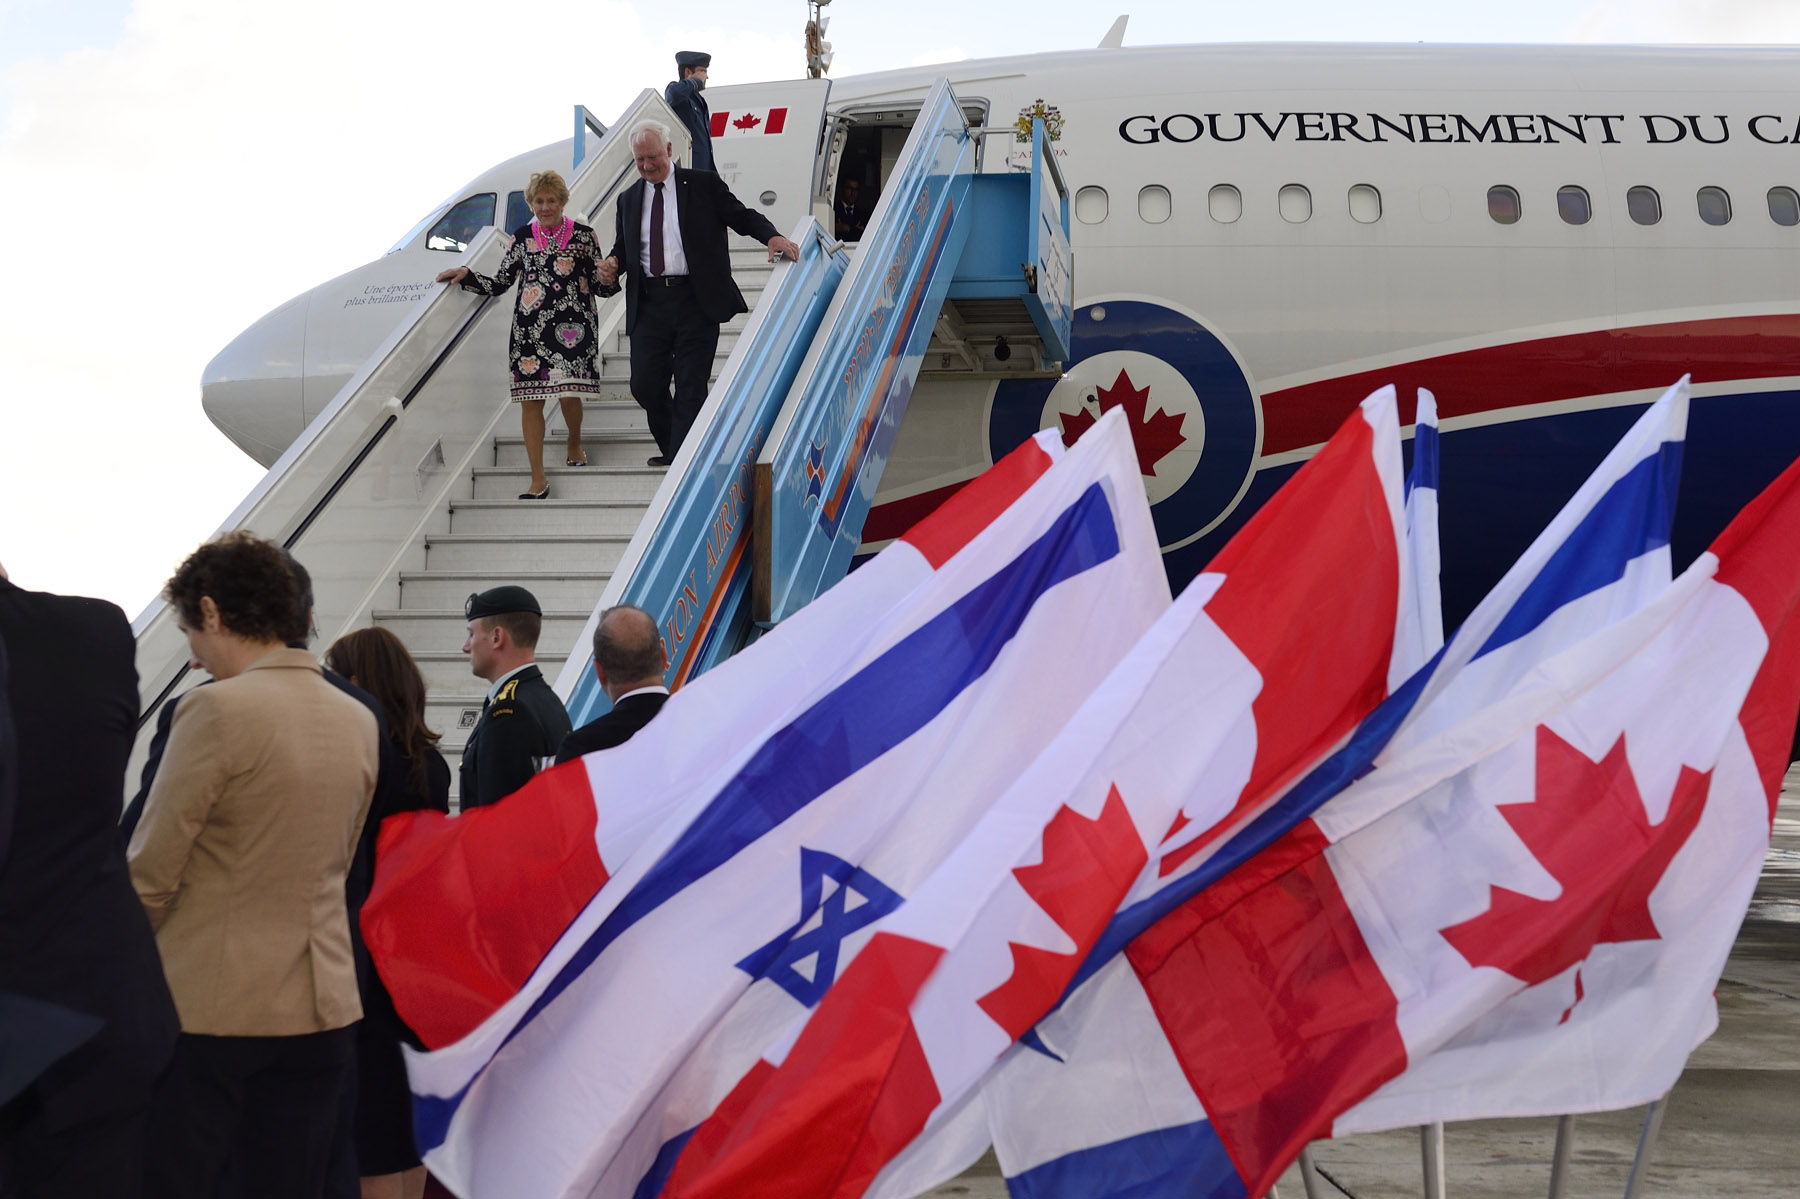 Upon arrival in Tel Aviv, Their Excellencies were greeted by Ms. Deborah Lyons, Canadian Ambassador designate to Israel, and by representatives of the Government of Israel.